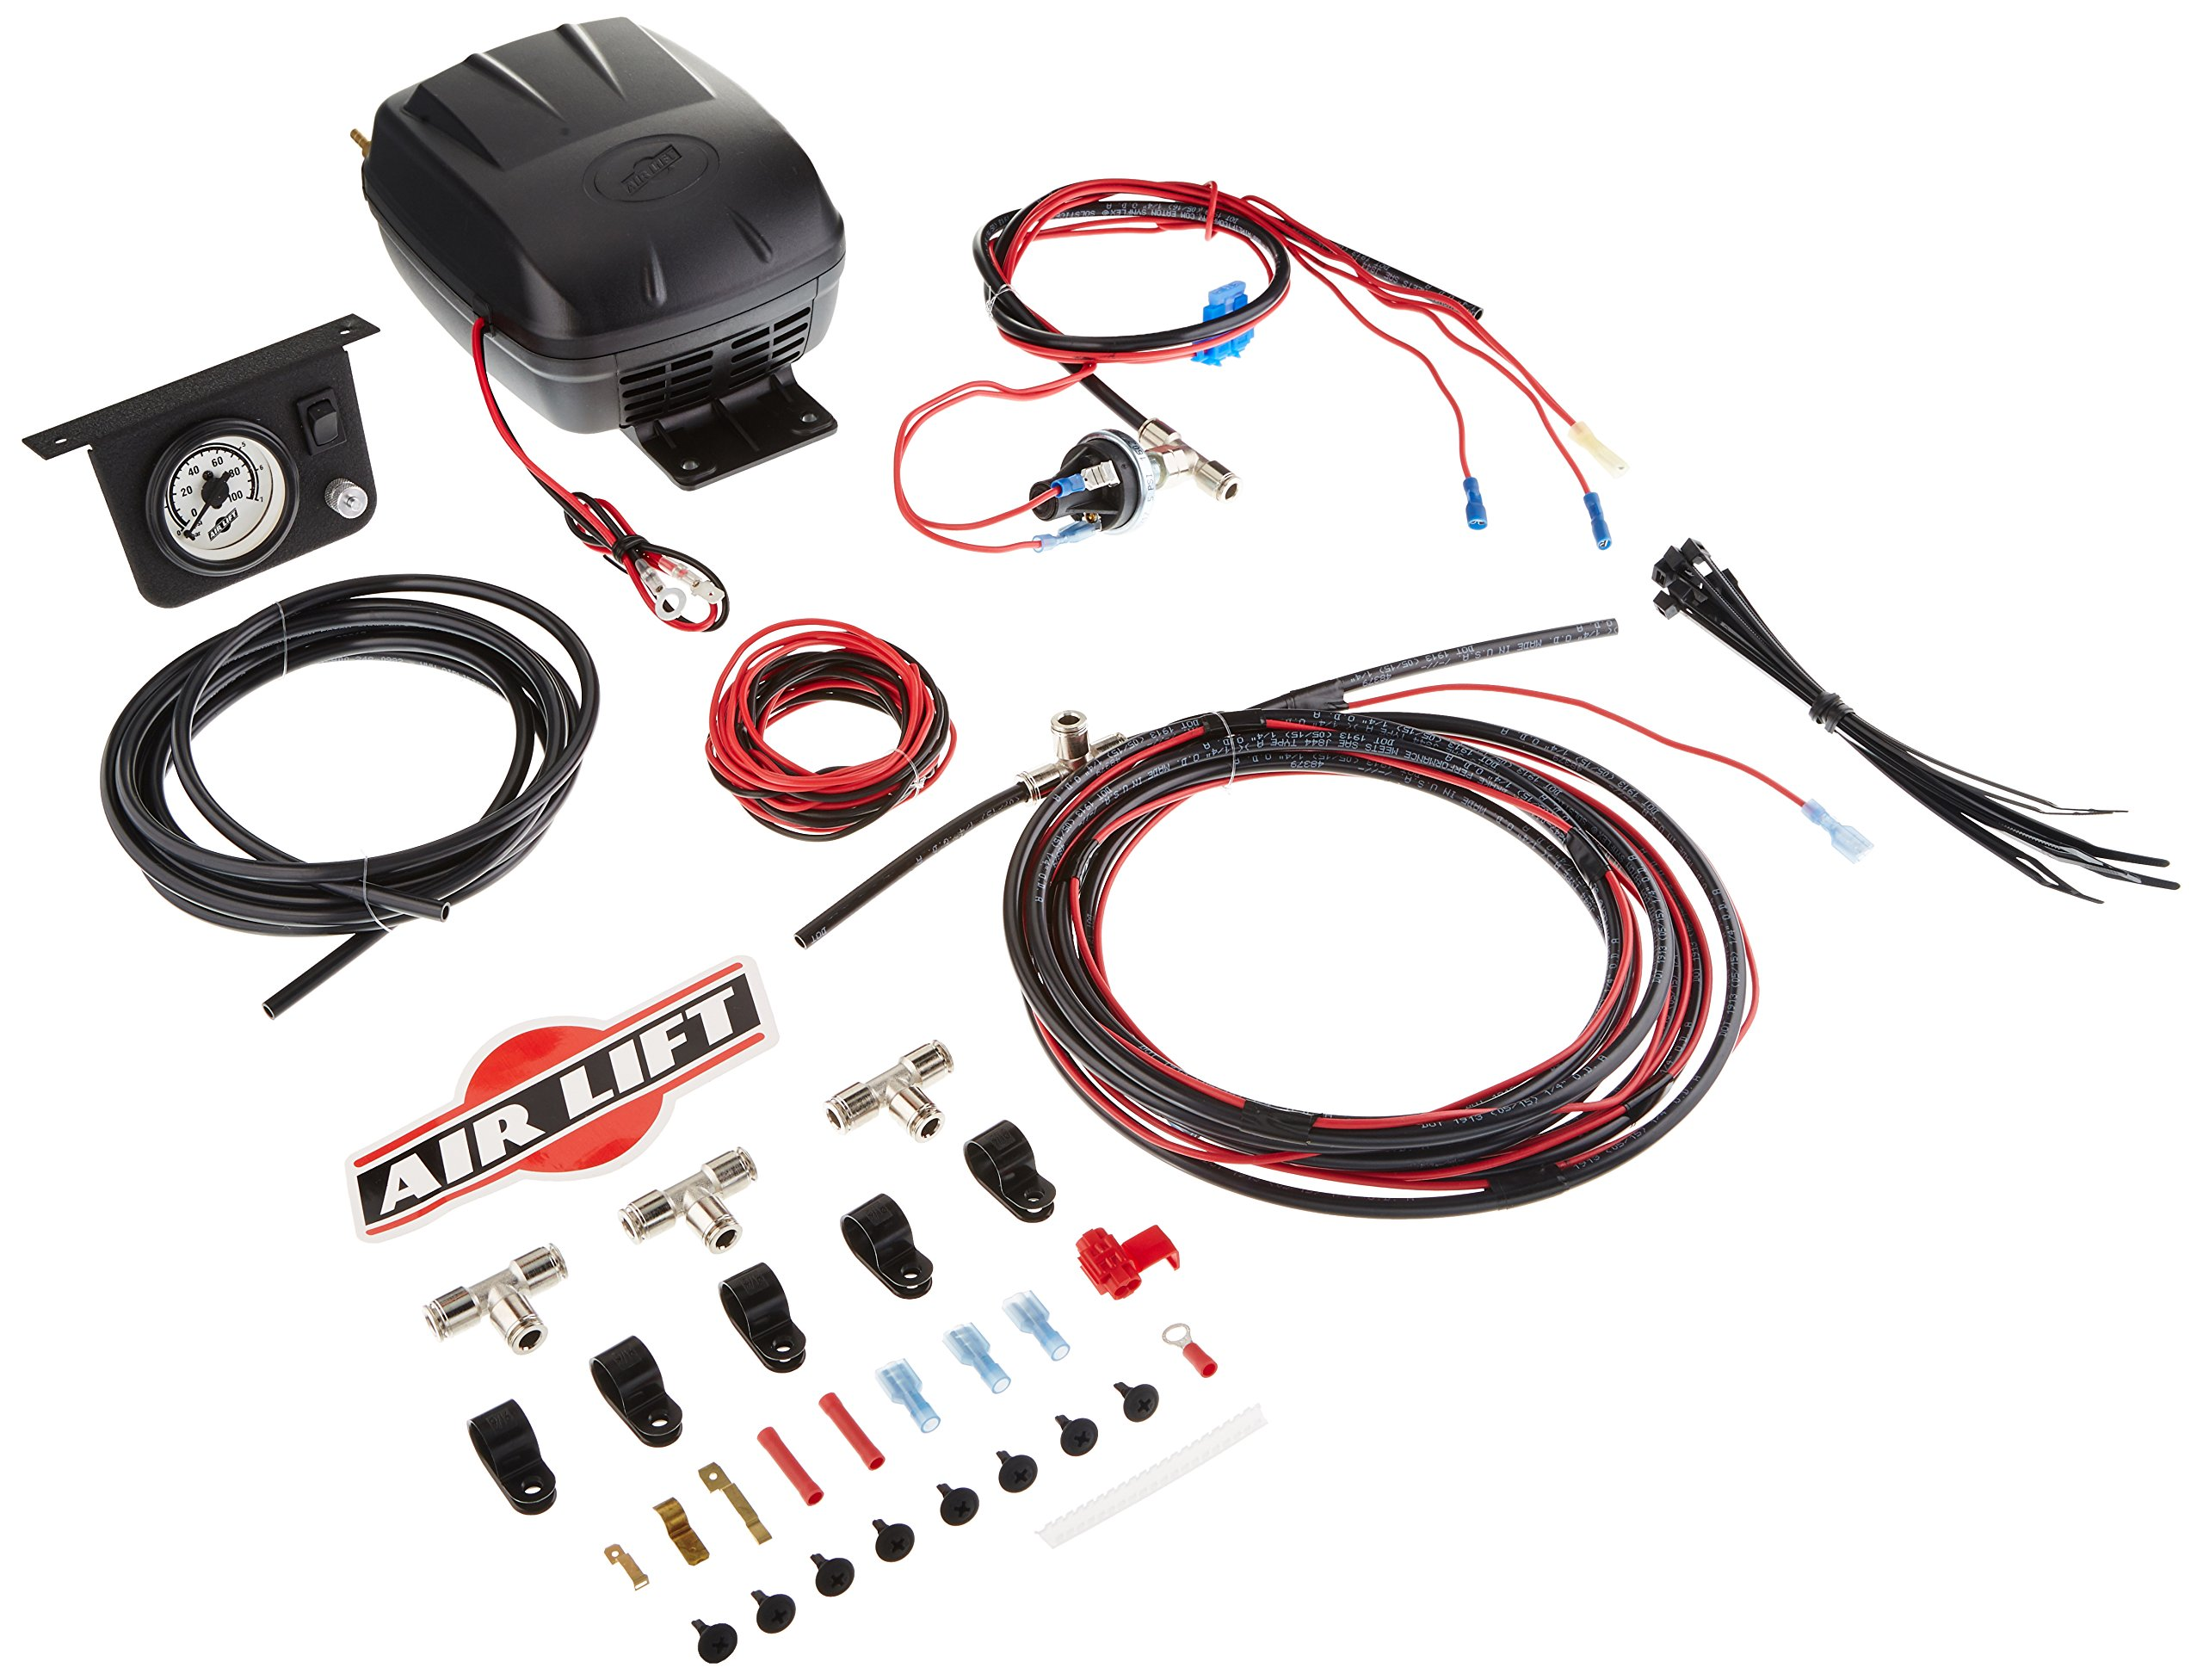 Best Rated In Automotive Performance Air Suspension Kits Helpful Boat Trailer Light Wiring Harness 4 Flat 35ft To Redo Lights Lift 25592 Load Controller Ii On Board Compressor System Product Image